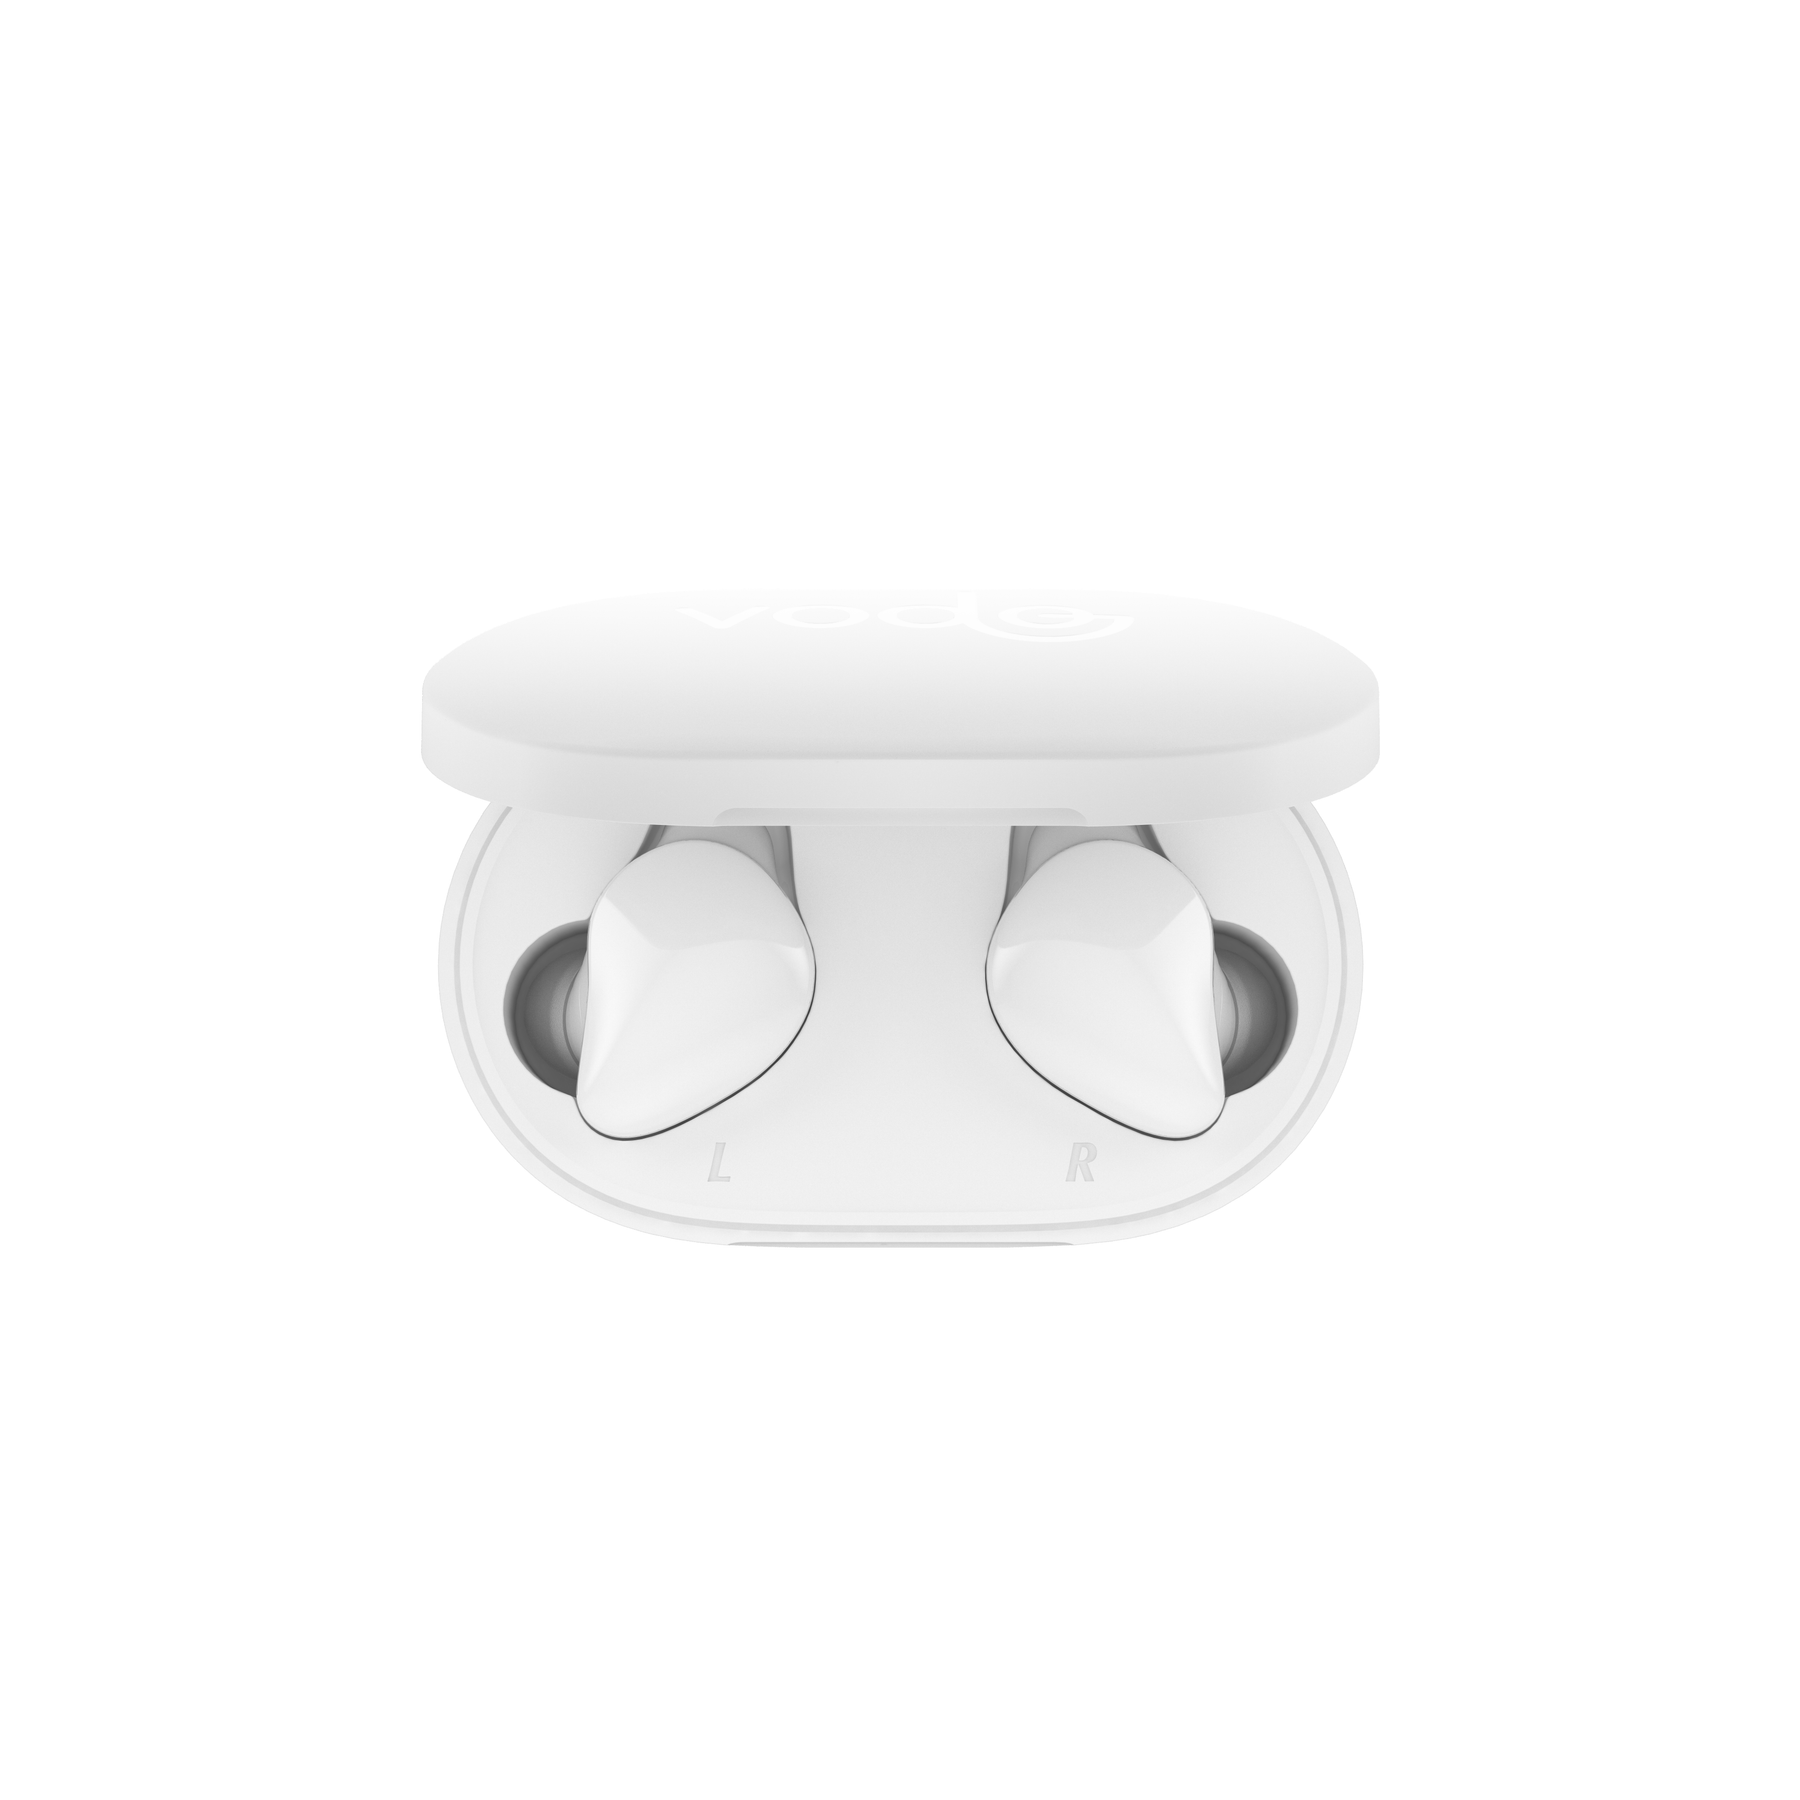 The VODO vibe wireless, Bluetooth 5.0 earbud